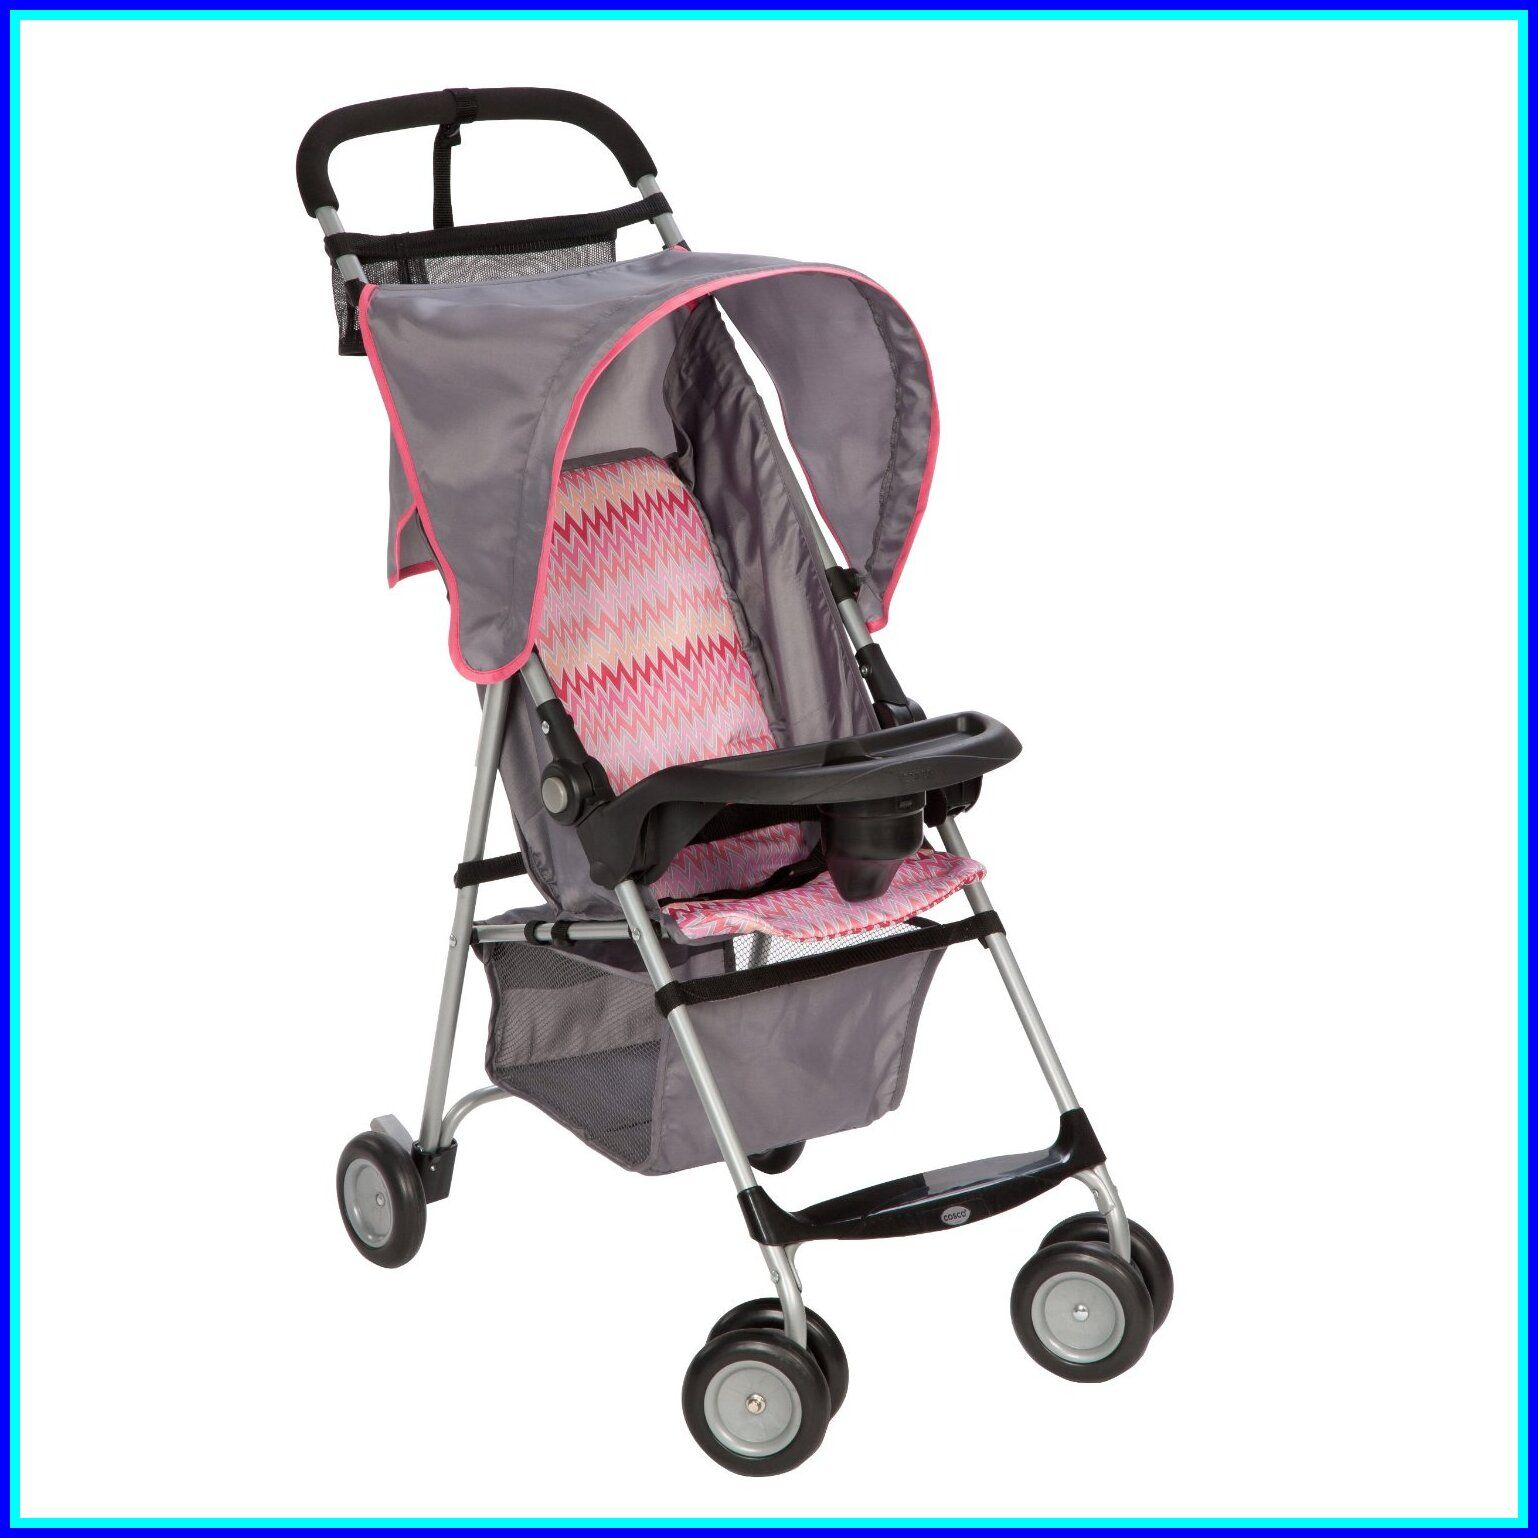 120 reference of umbrella stroller pink in 2020 Stroller